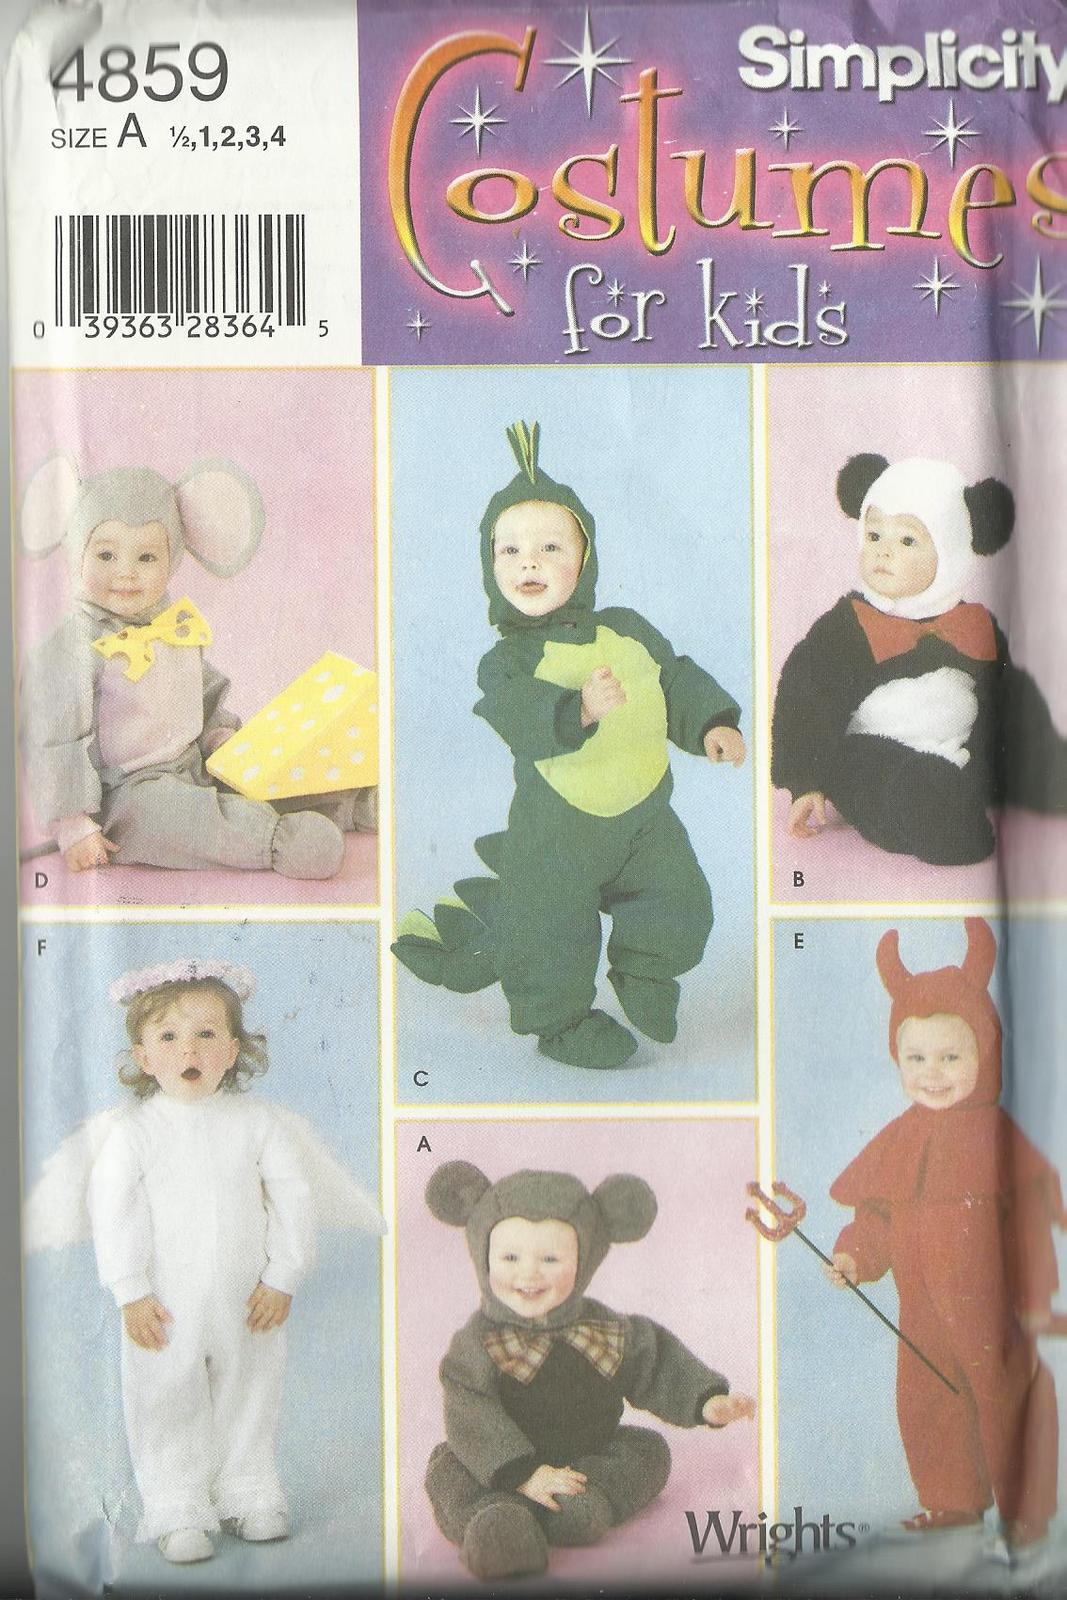 Simplicity 4859 Pattern Costume baby 1 2 3 4 mouse panda angel monkey alligator Simplicity